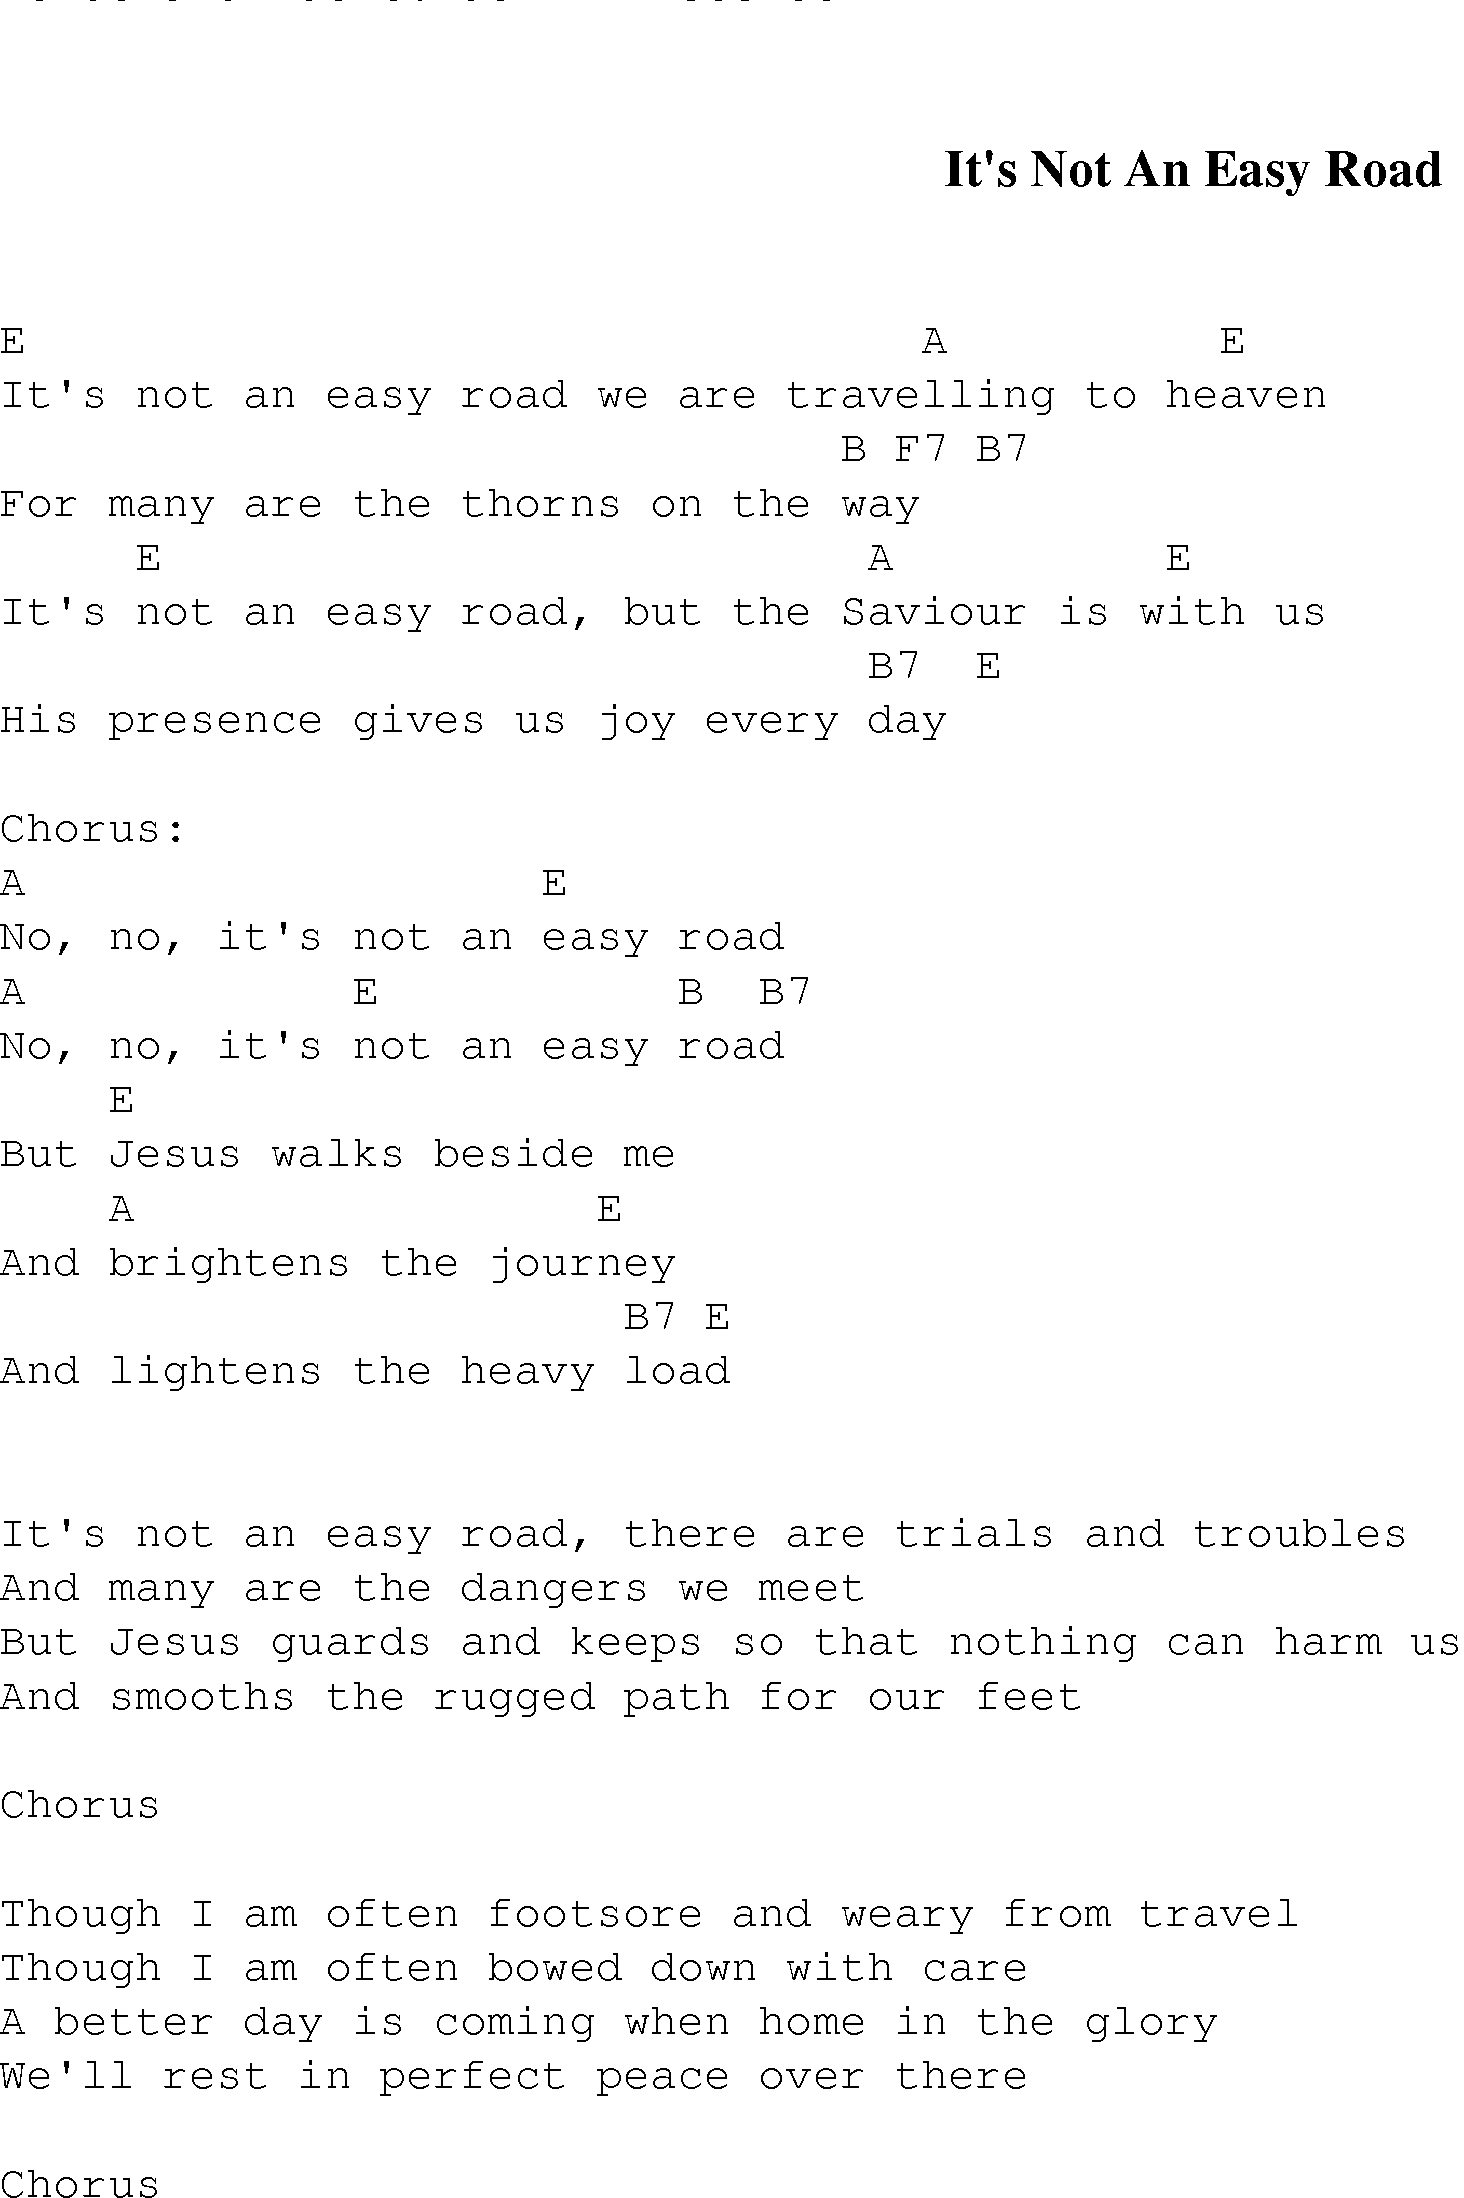 It's Not An Easy Road - Christian Gospel Song Lyrics And Chords - Free Printable Lyrics To Christian Songs